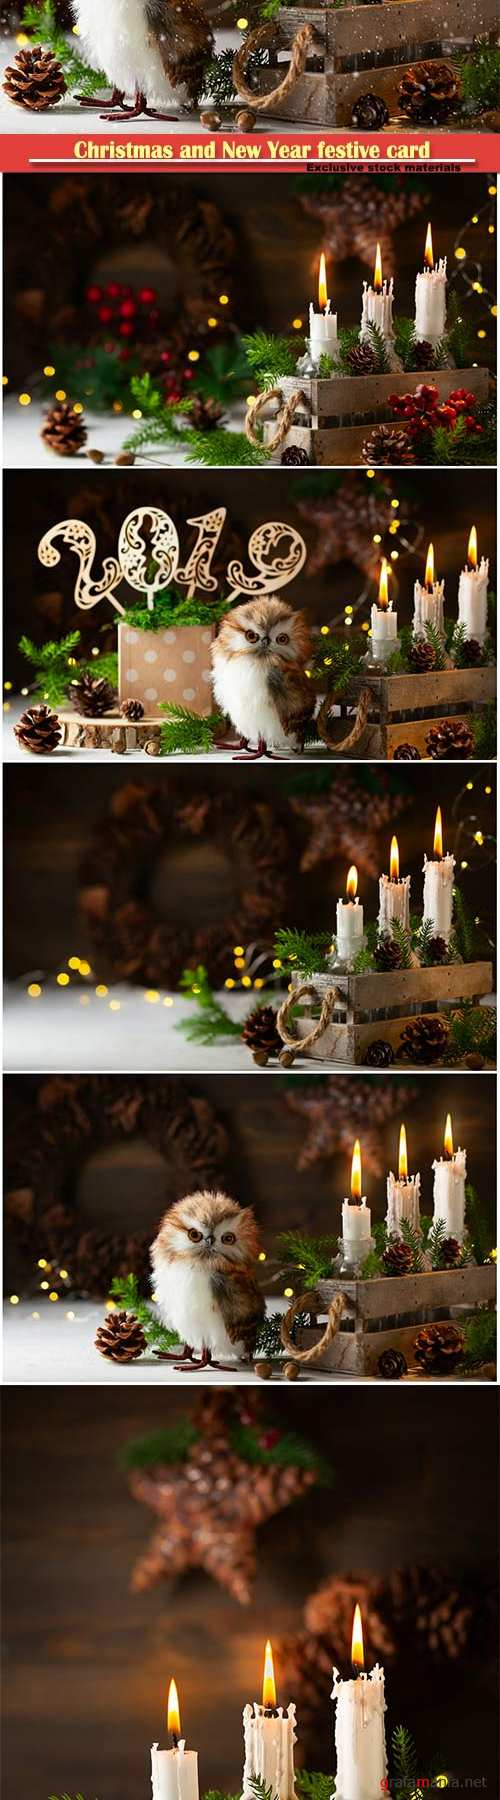 Christmas and New Year festive card, candles, owl, pine cones and fir branches in old box